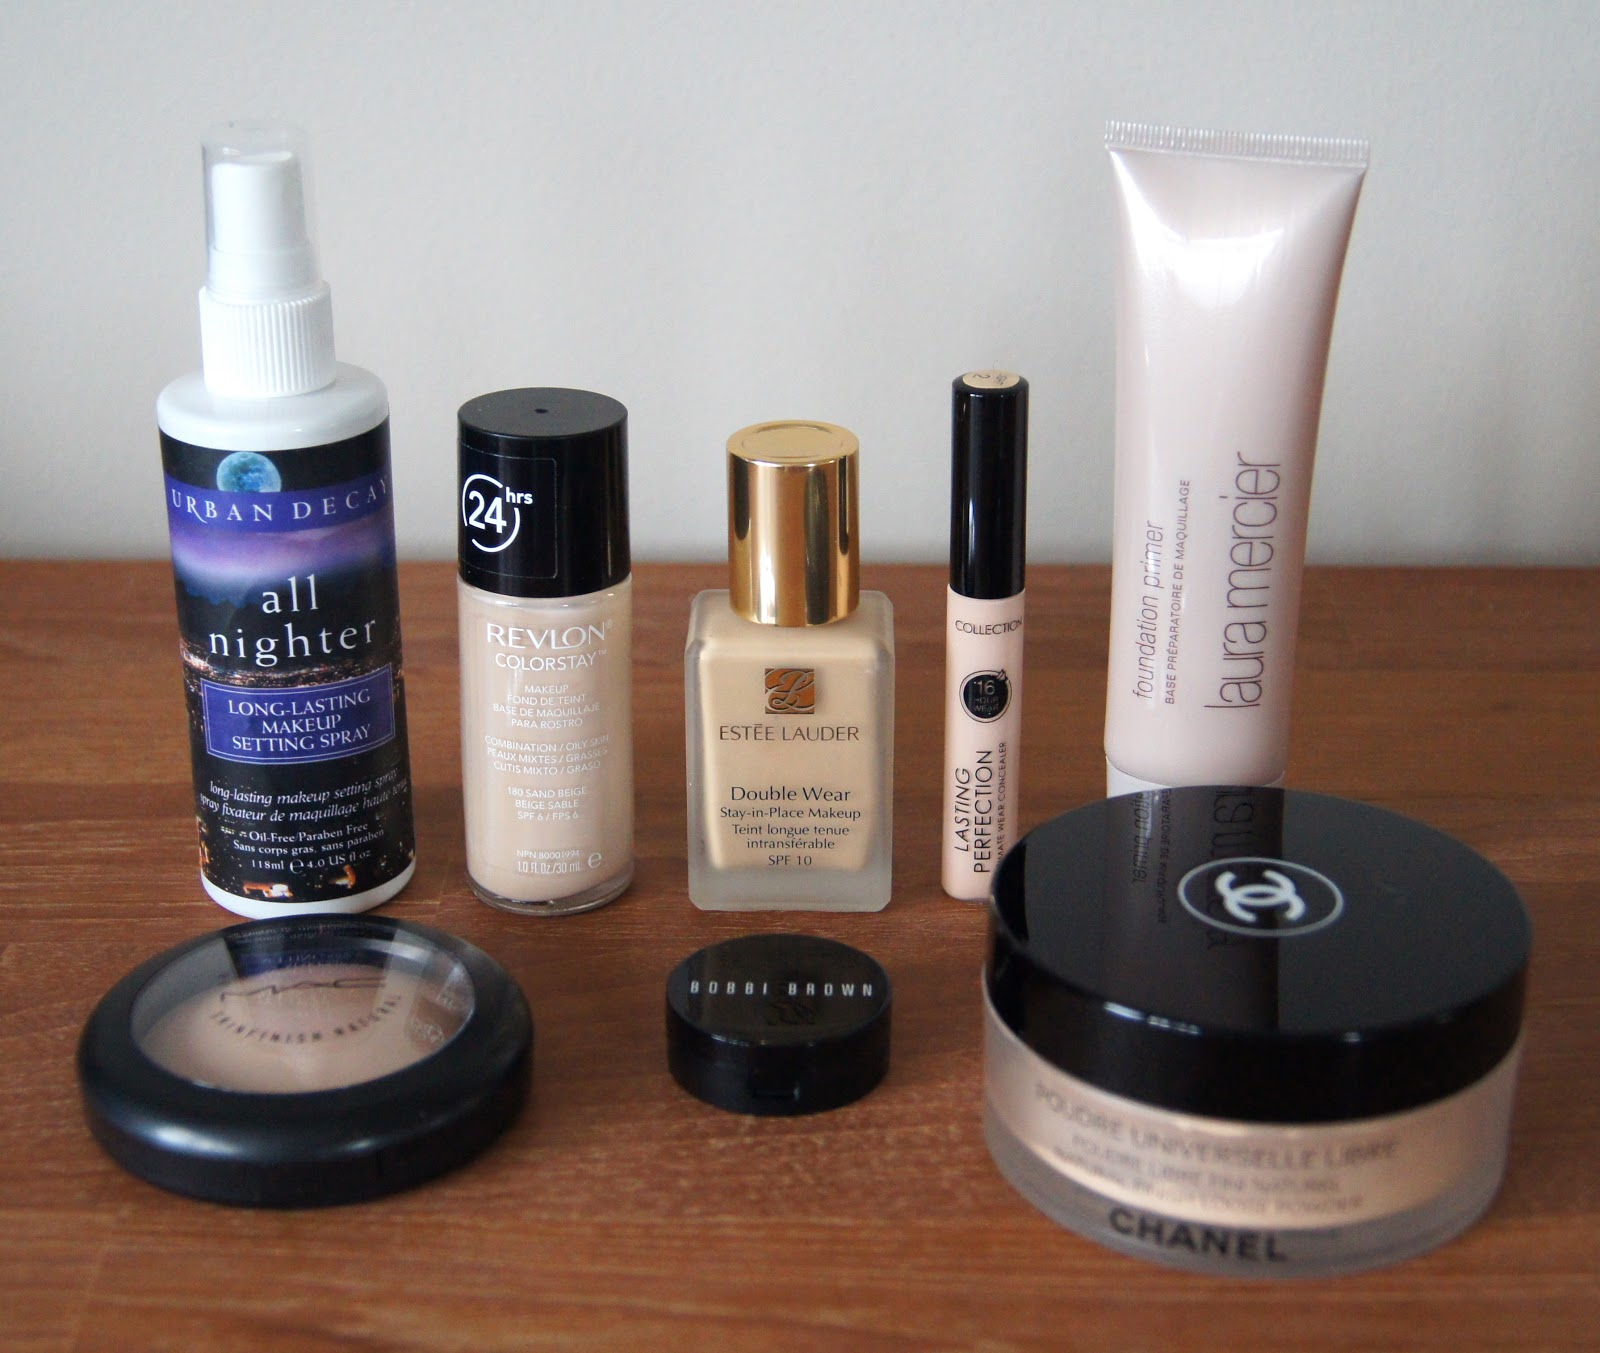 complexion makeup stash staples medium full coverage face products swatches